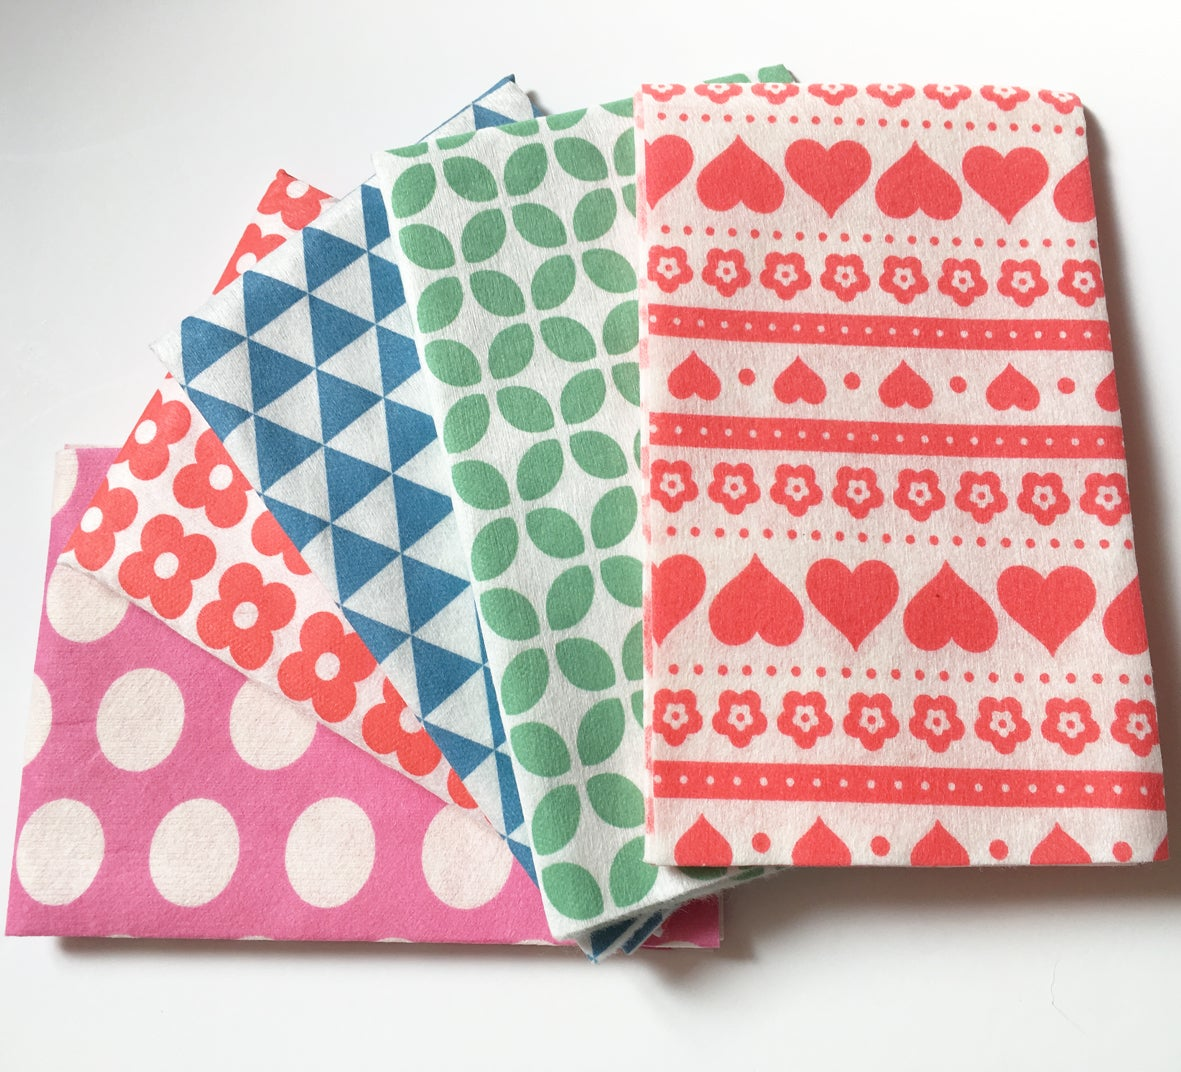 Image of Mixed Pattern Cloths - 20 loose cloths (4Red Daisy + 4Blue + 4Green +4Pink +4Red Scandi) ***NEW***